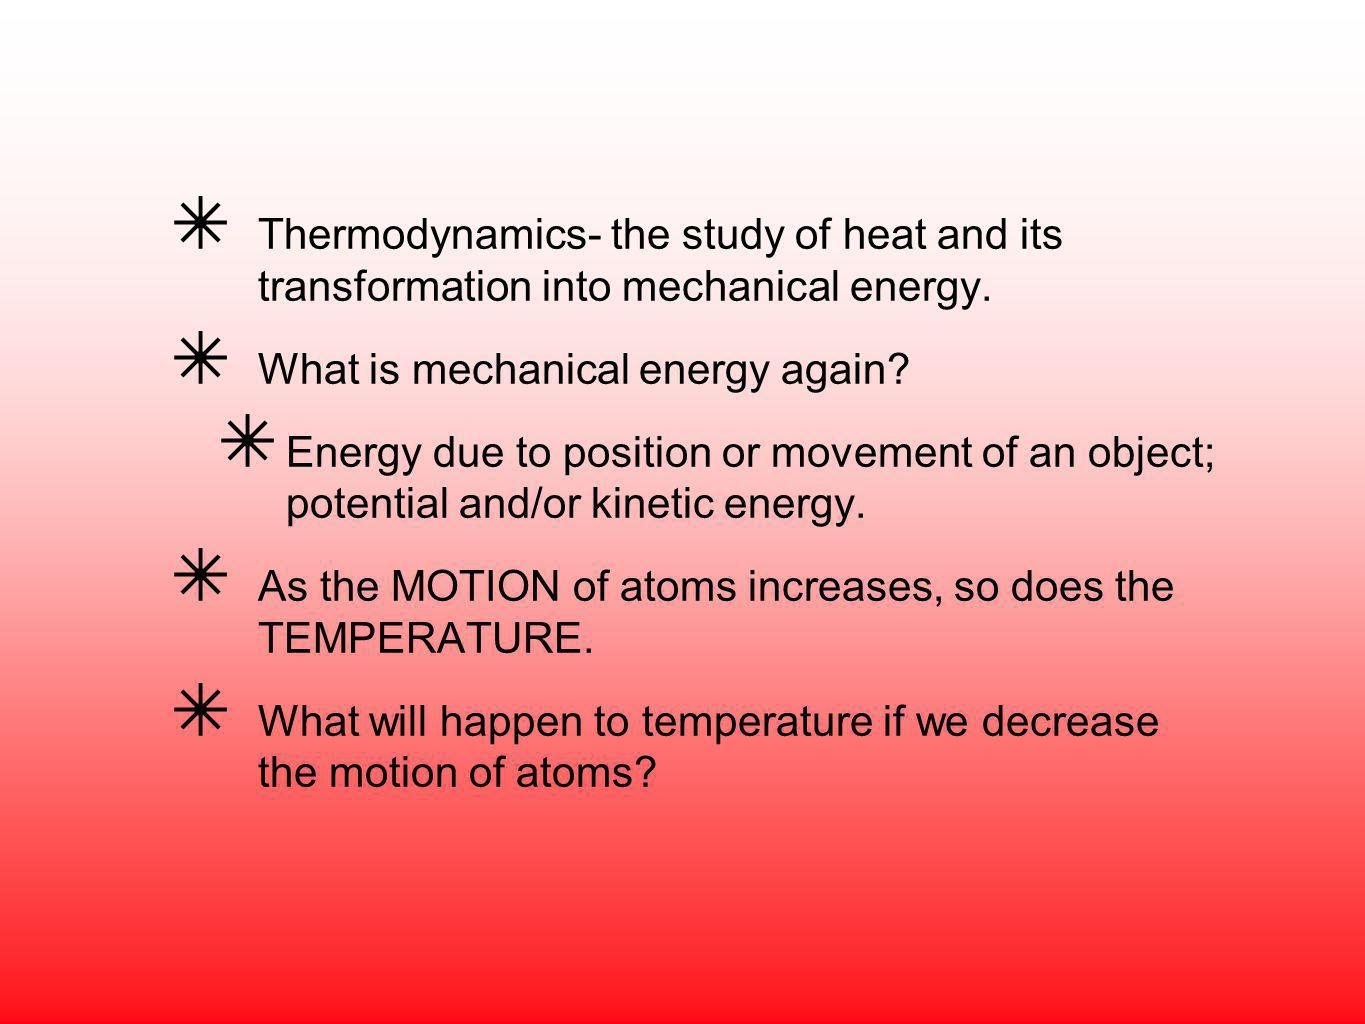 Thermodynamics- the study of heat and its transformation into mechanical energy. What is mechanical energy again? Energy due to position or movement o